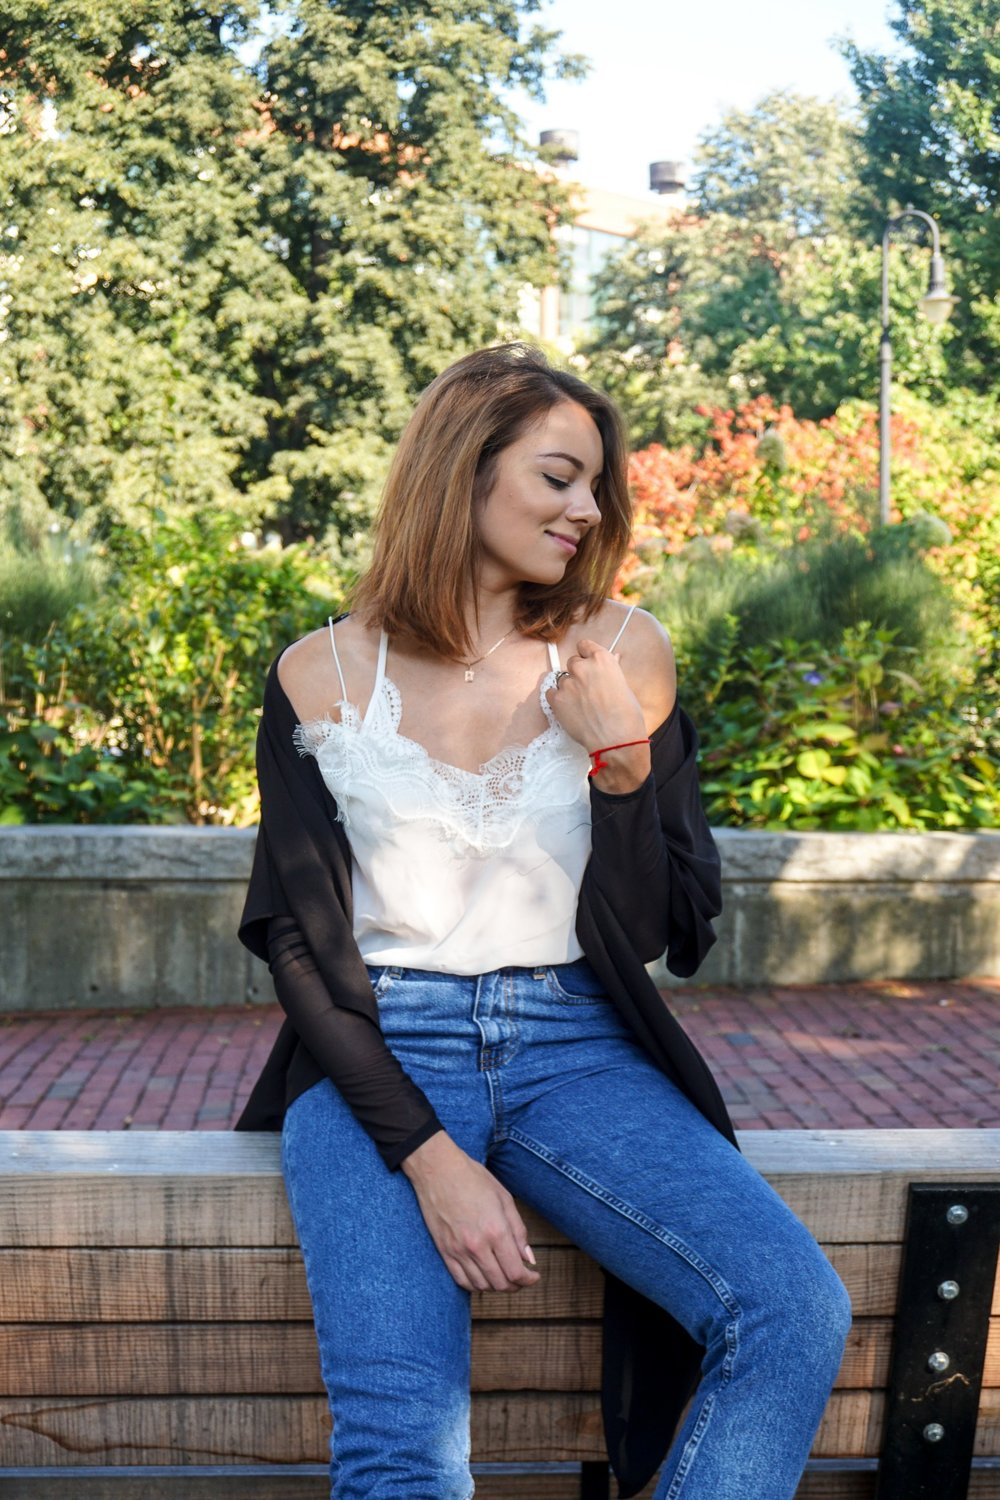 A fashion blogger wearing a white tank top with lace, blue mom jeans, and a black duster.